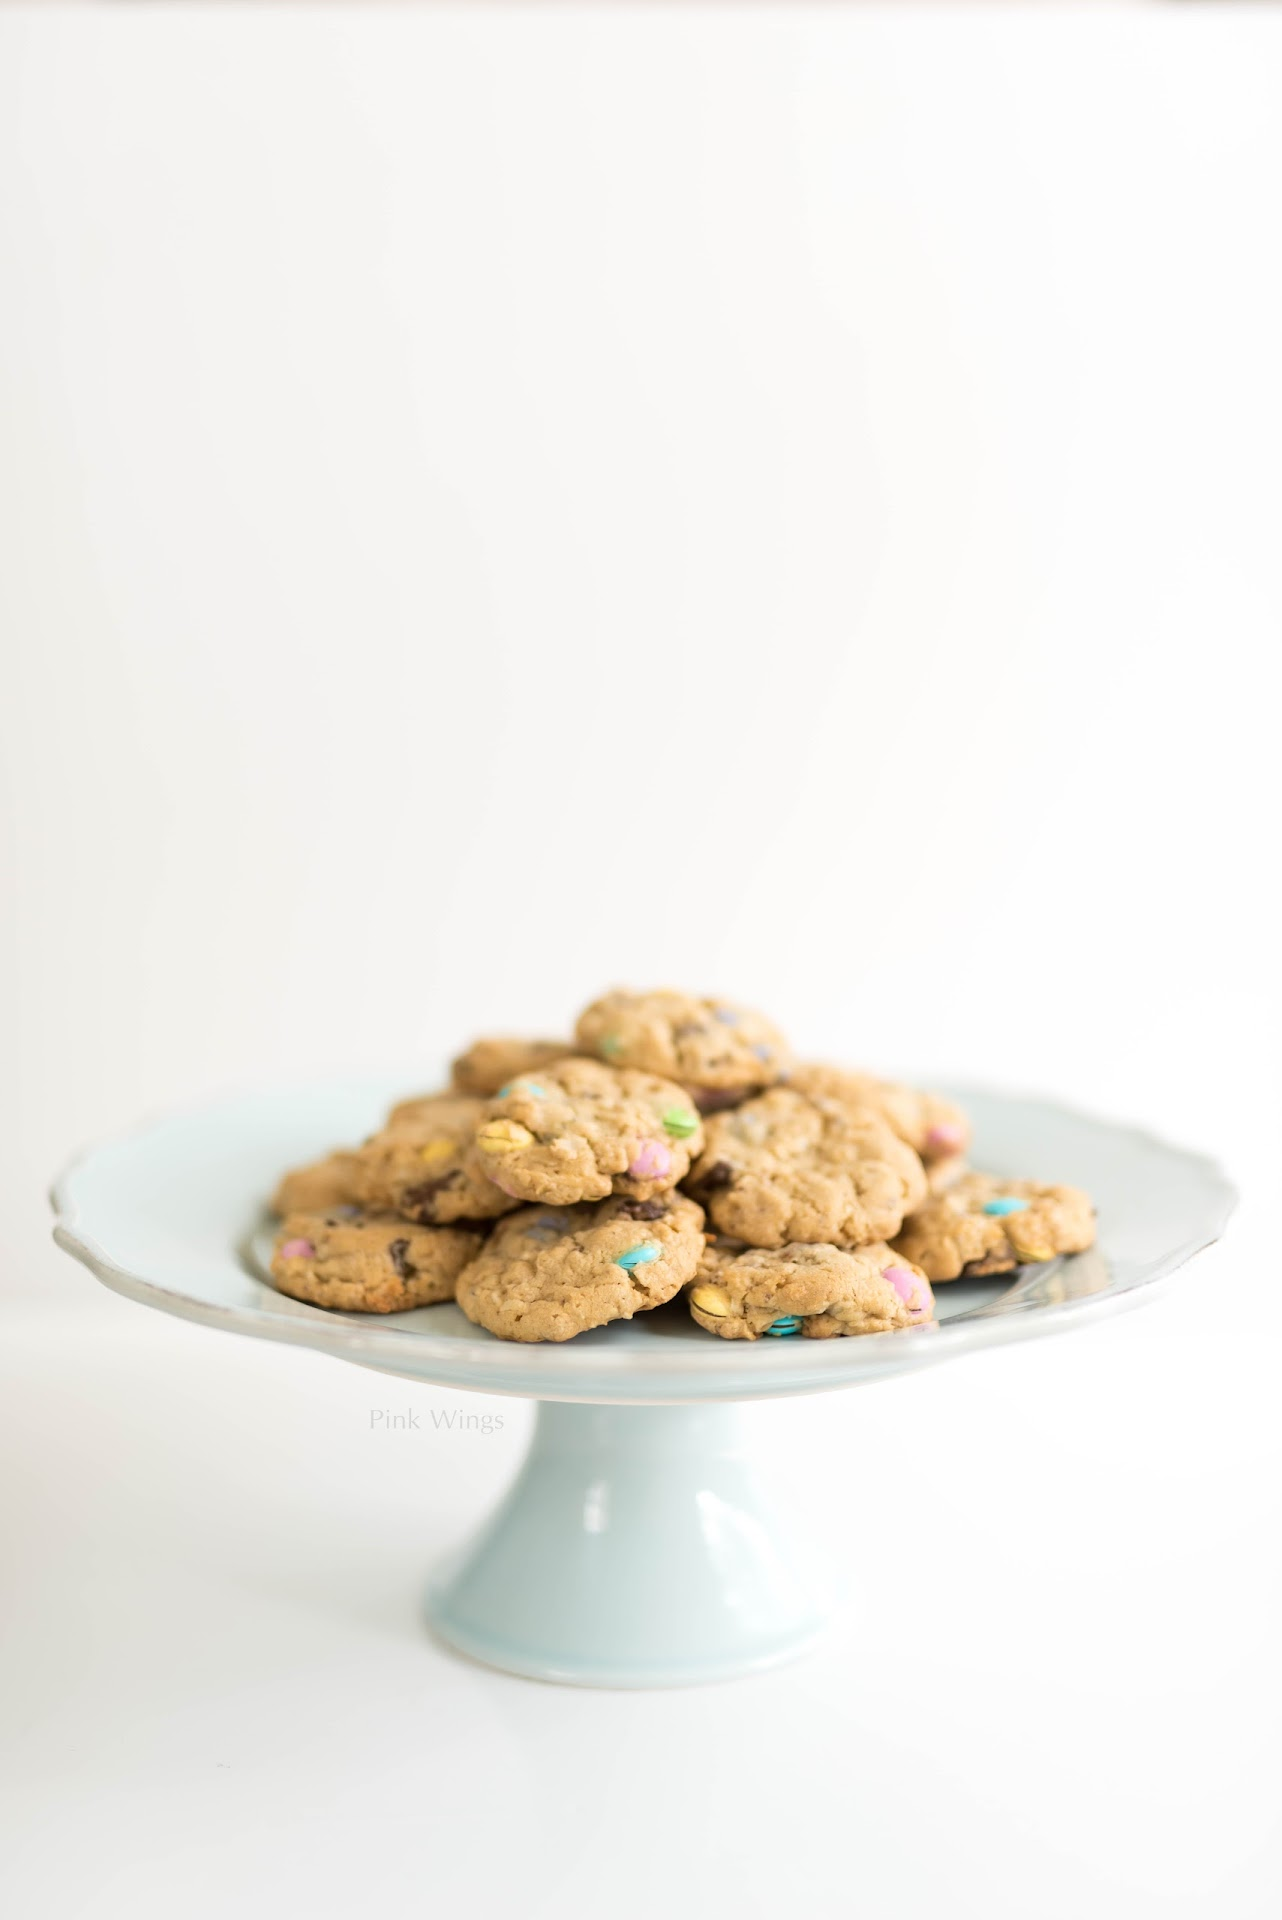 easter dessert recipe, easter cookie recipe, pastel dessert, hawaiian cookie recipe easy, hawaiian dessert recipe, hawaiian cookie recipe, hawaiian chocolate chip cookies,